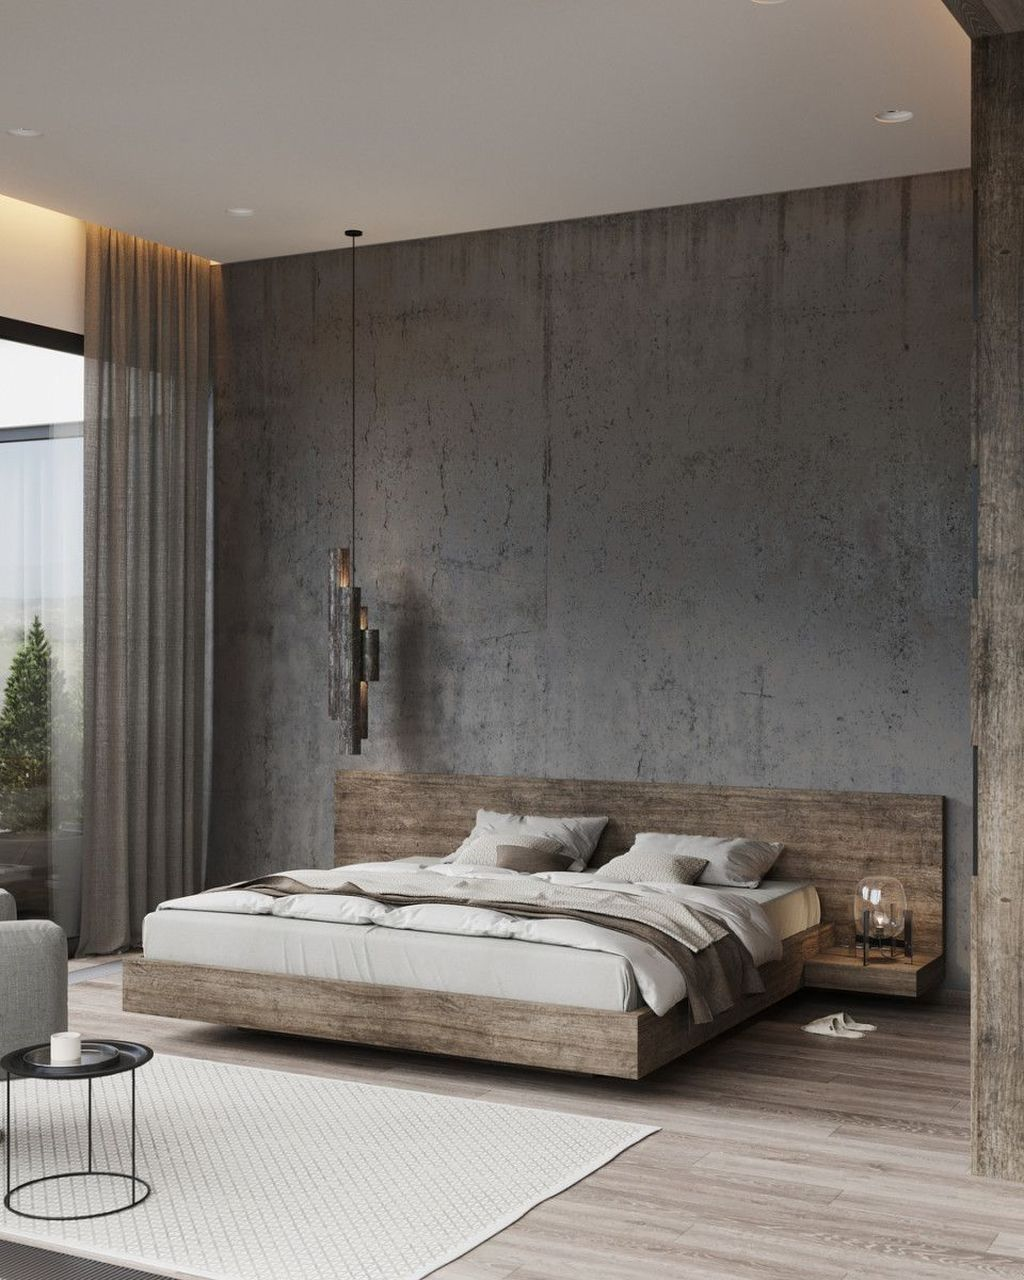 35 Unique Bedroom Decorating Ideas Homyfeed In 2020 Modern